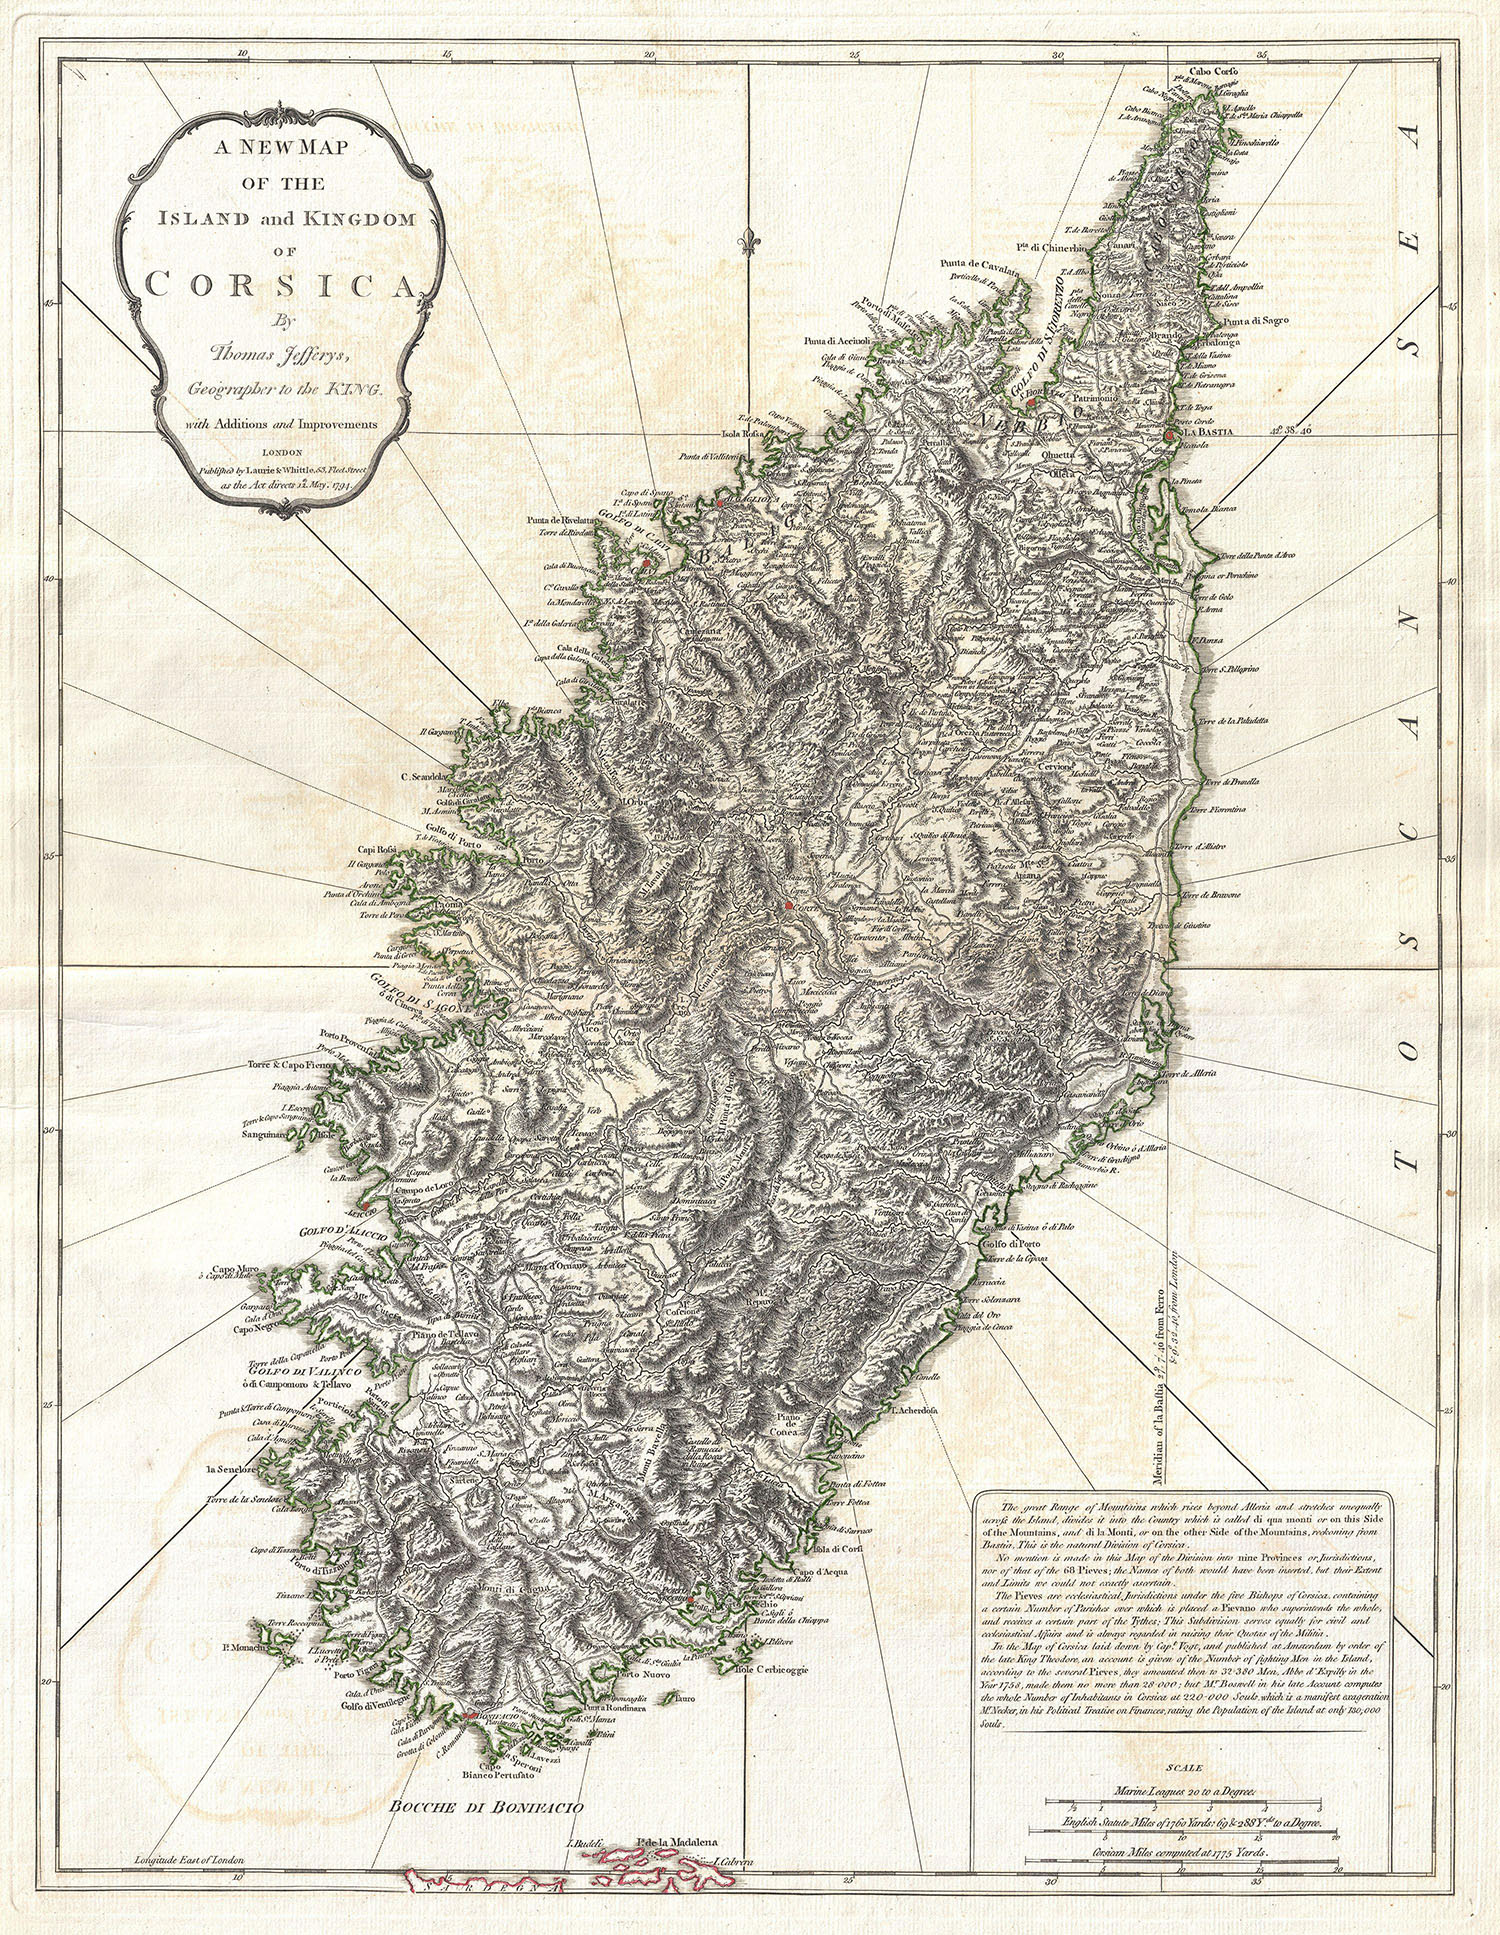 Image 1794 Jeffreys Map of Corsica France Geographicus